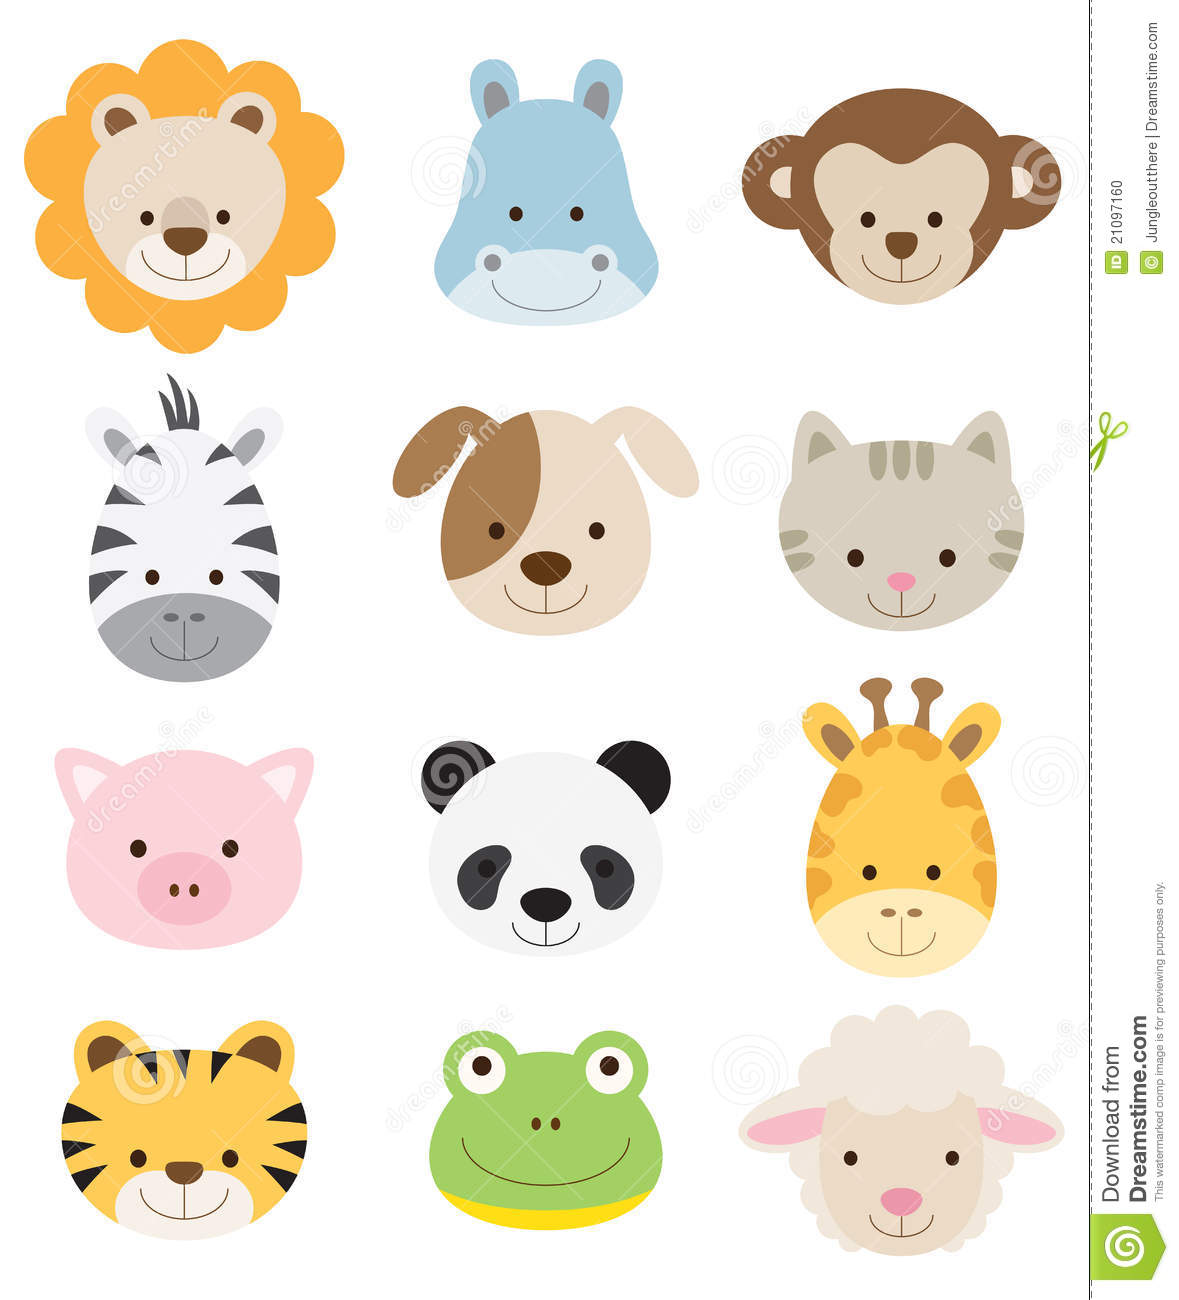 Baby Animal Faces Stock Photo - Image: 21097160